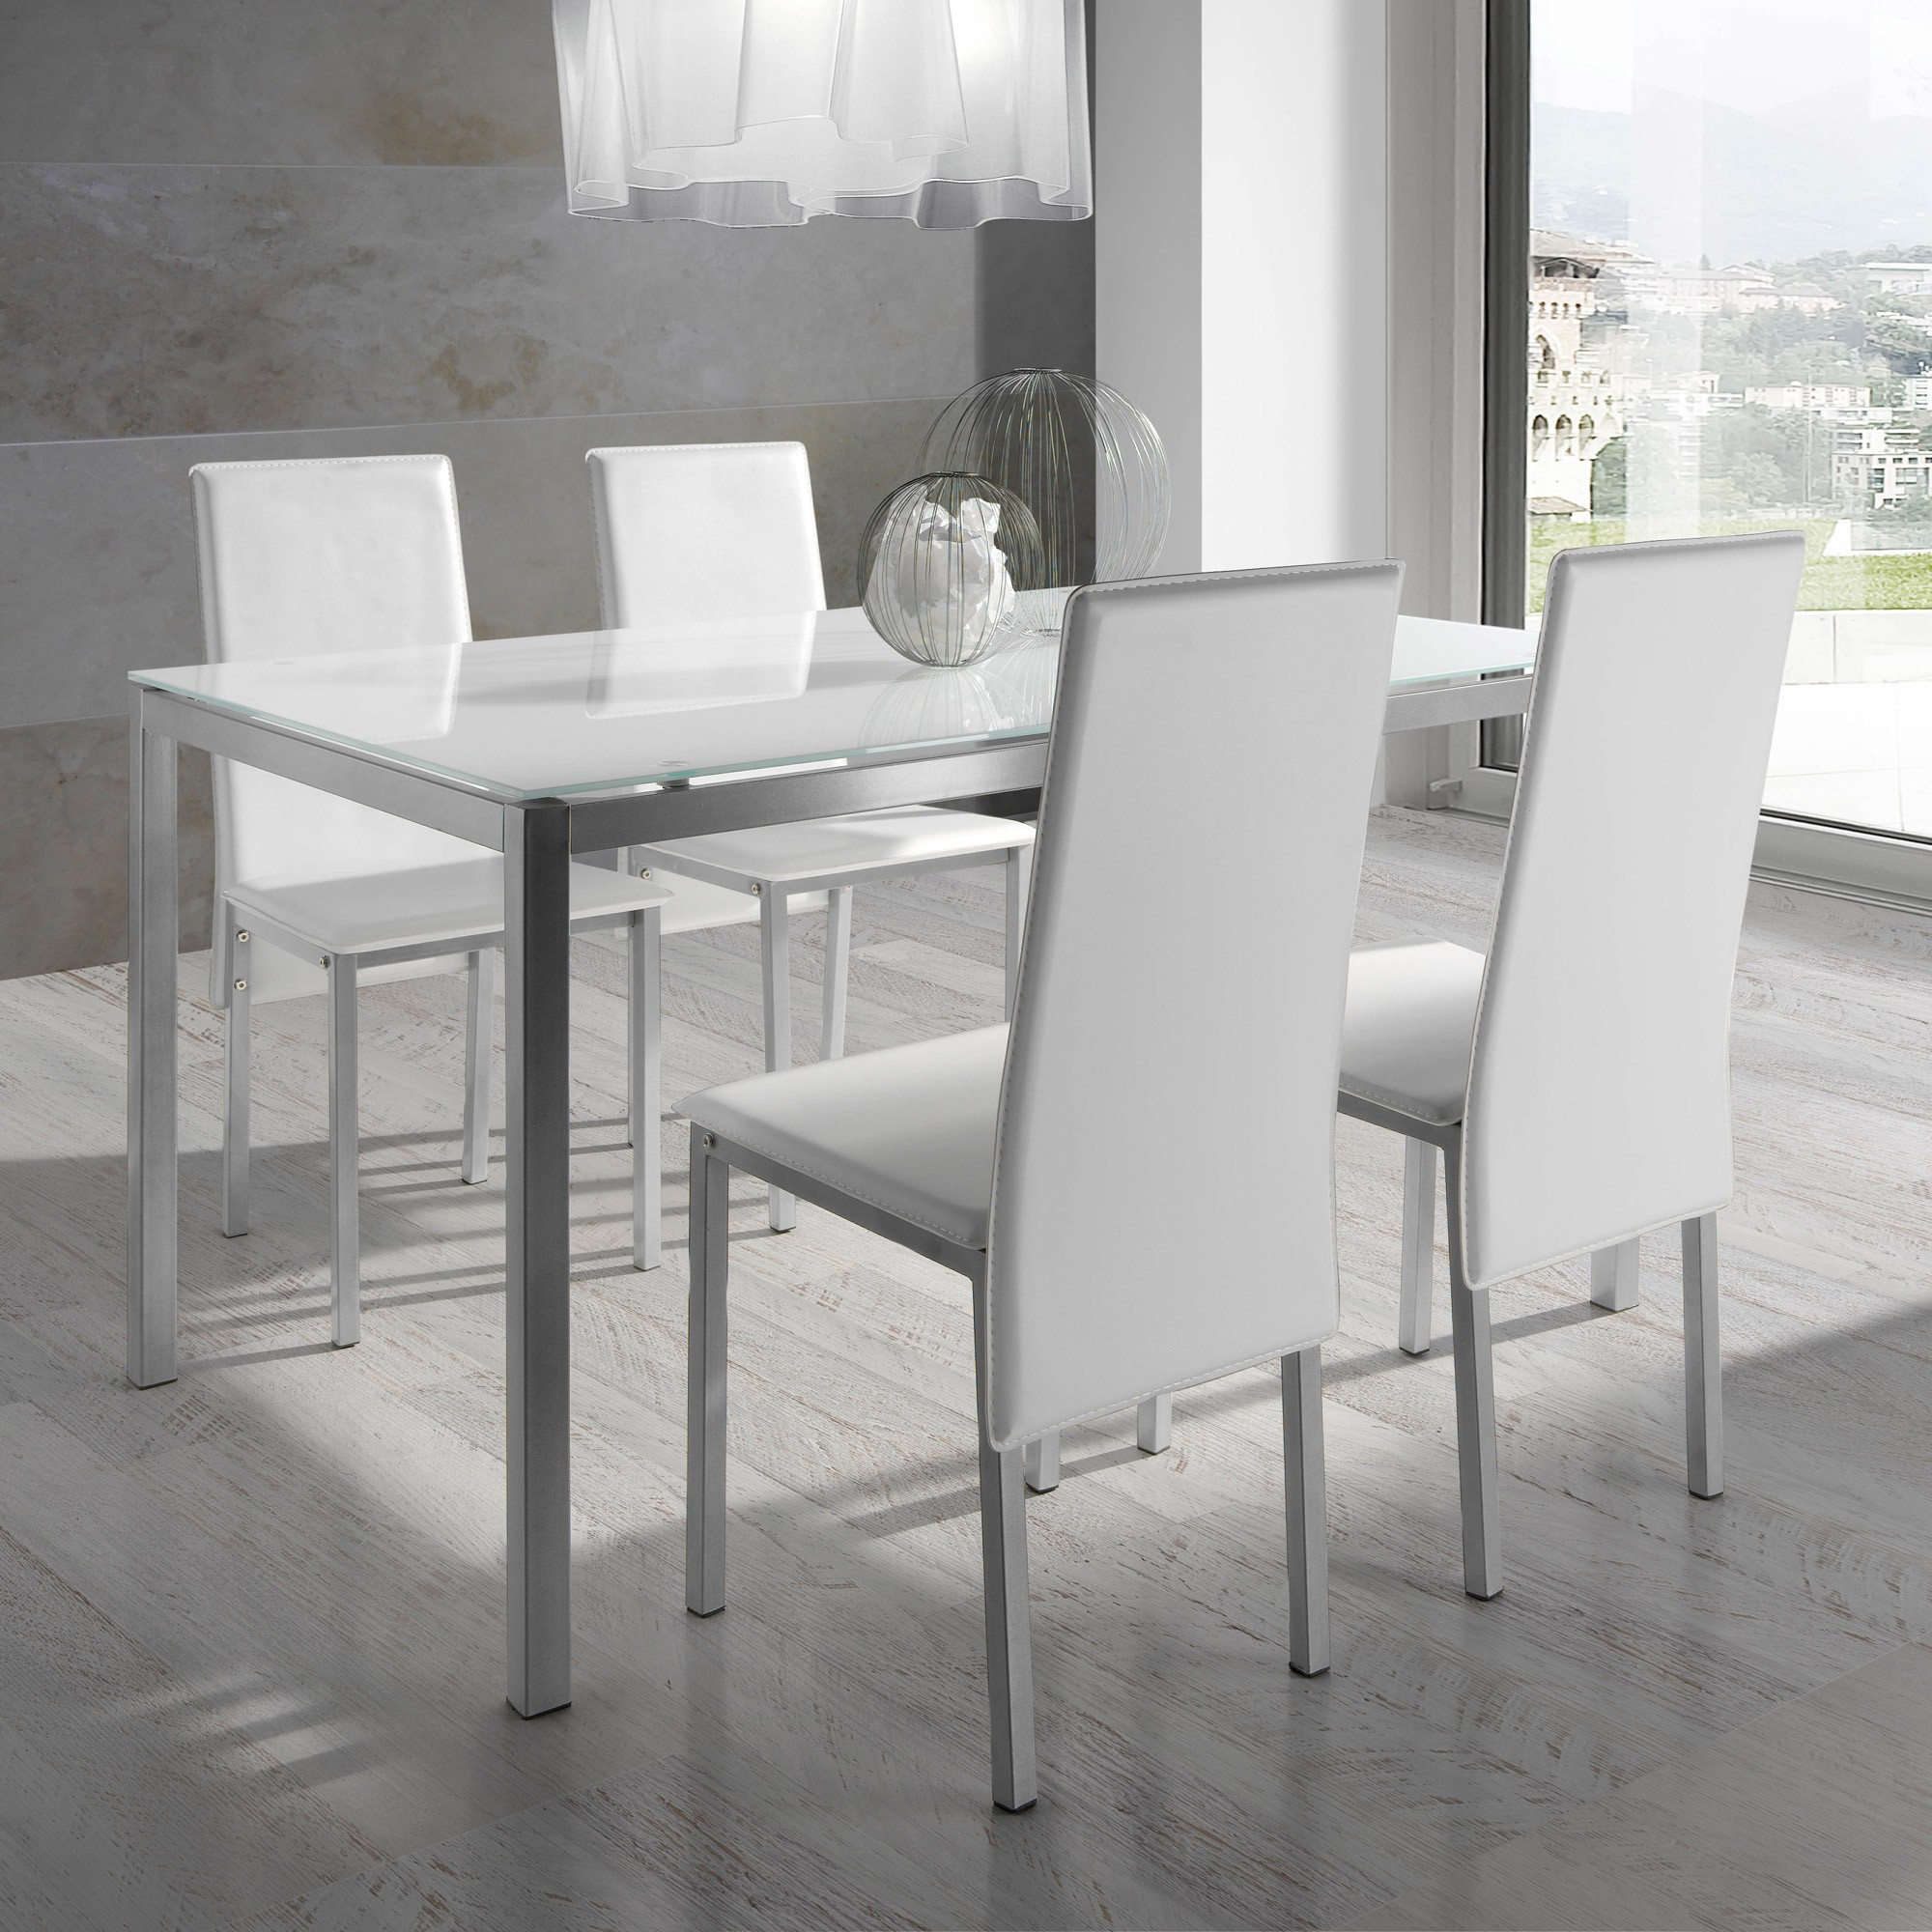 Ensemble table et chaise salle a manger but chaise for Salle a manger chaise blanche